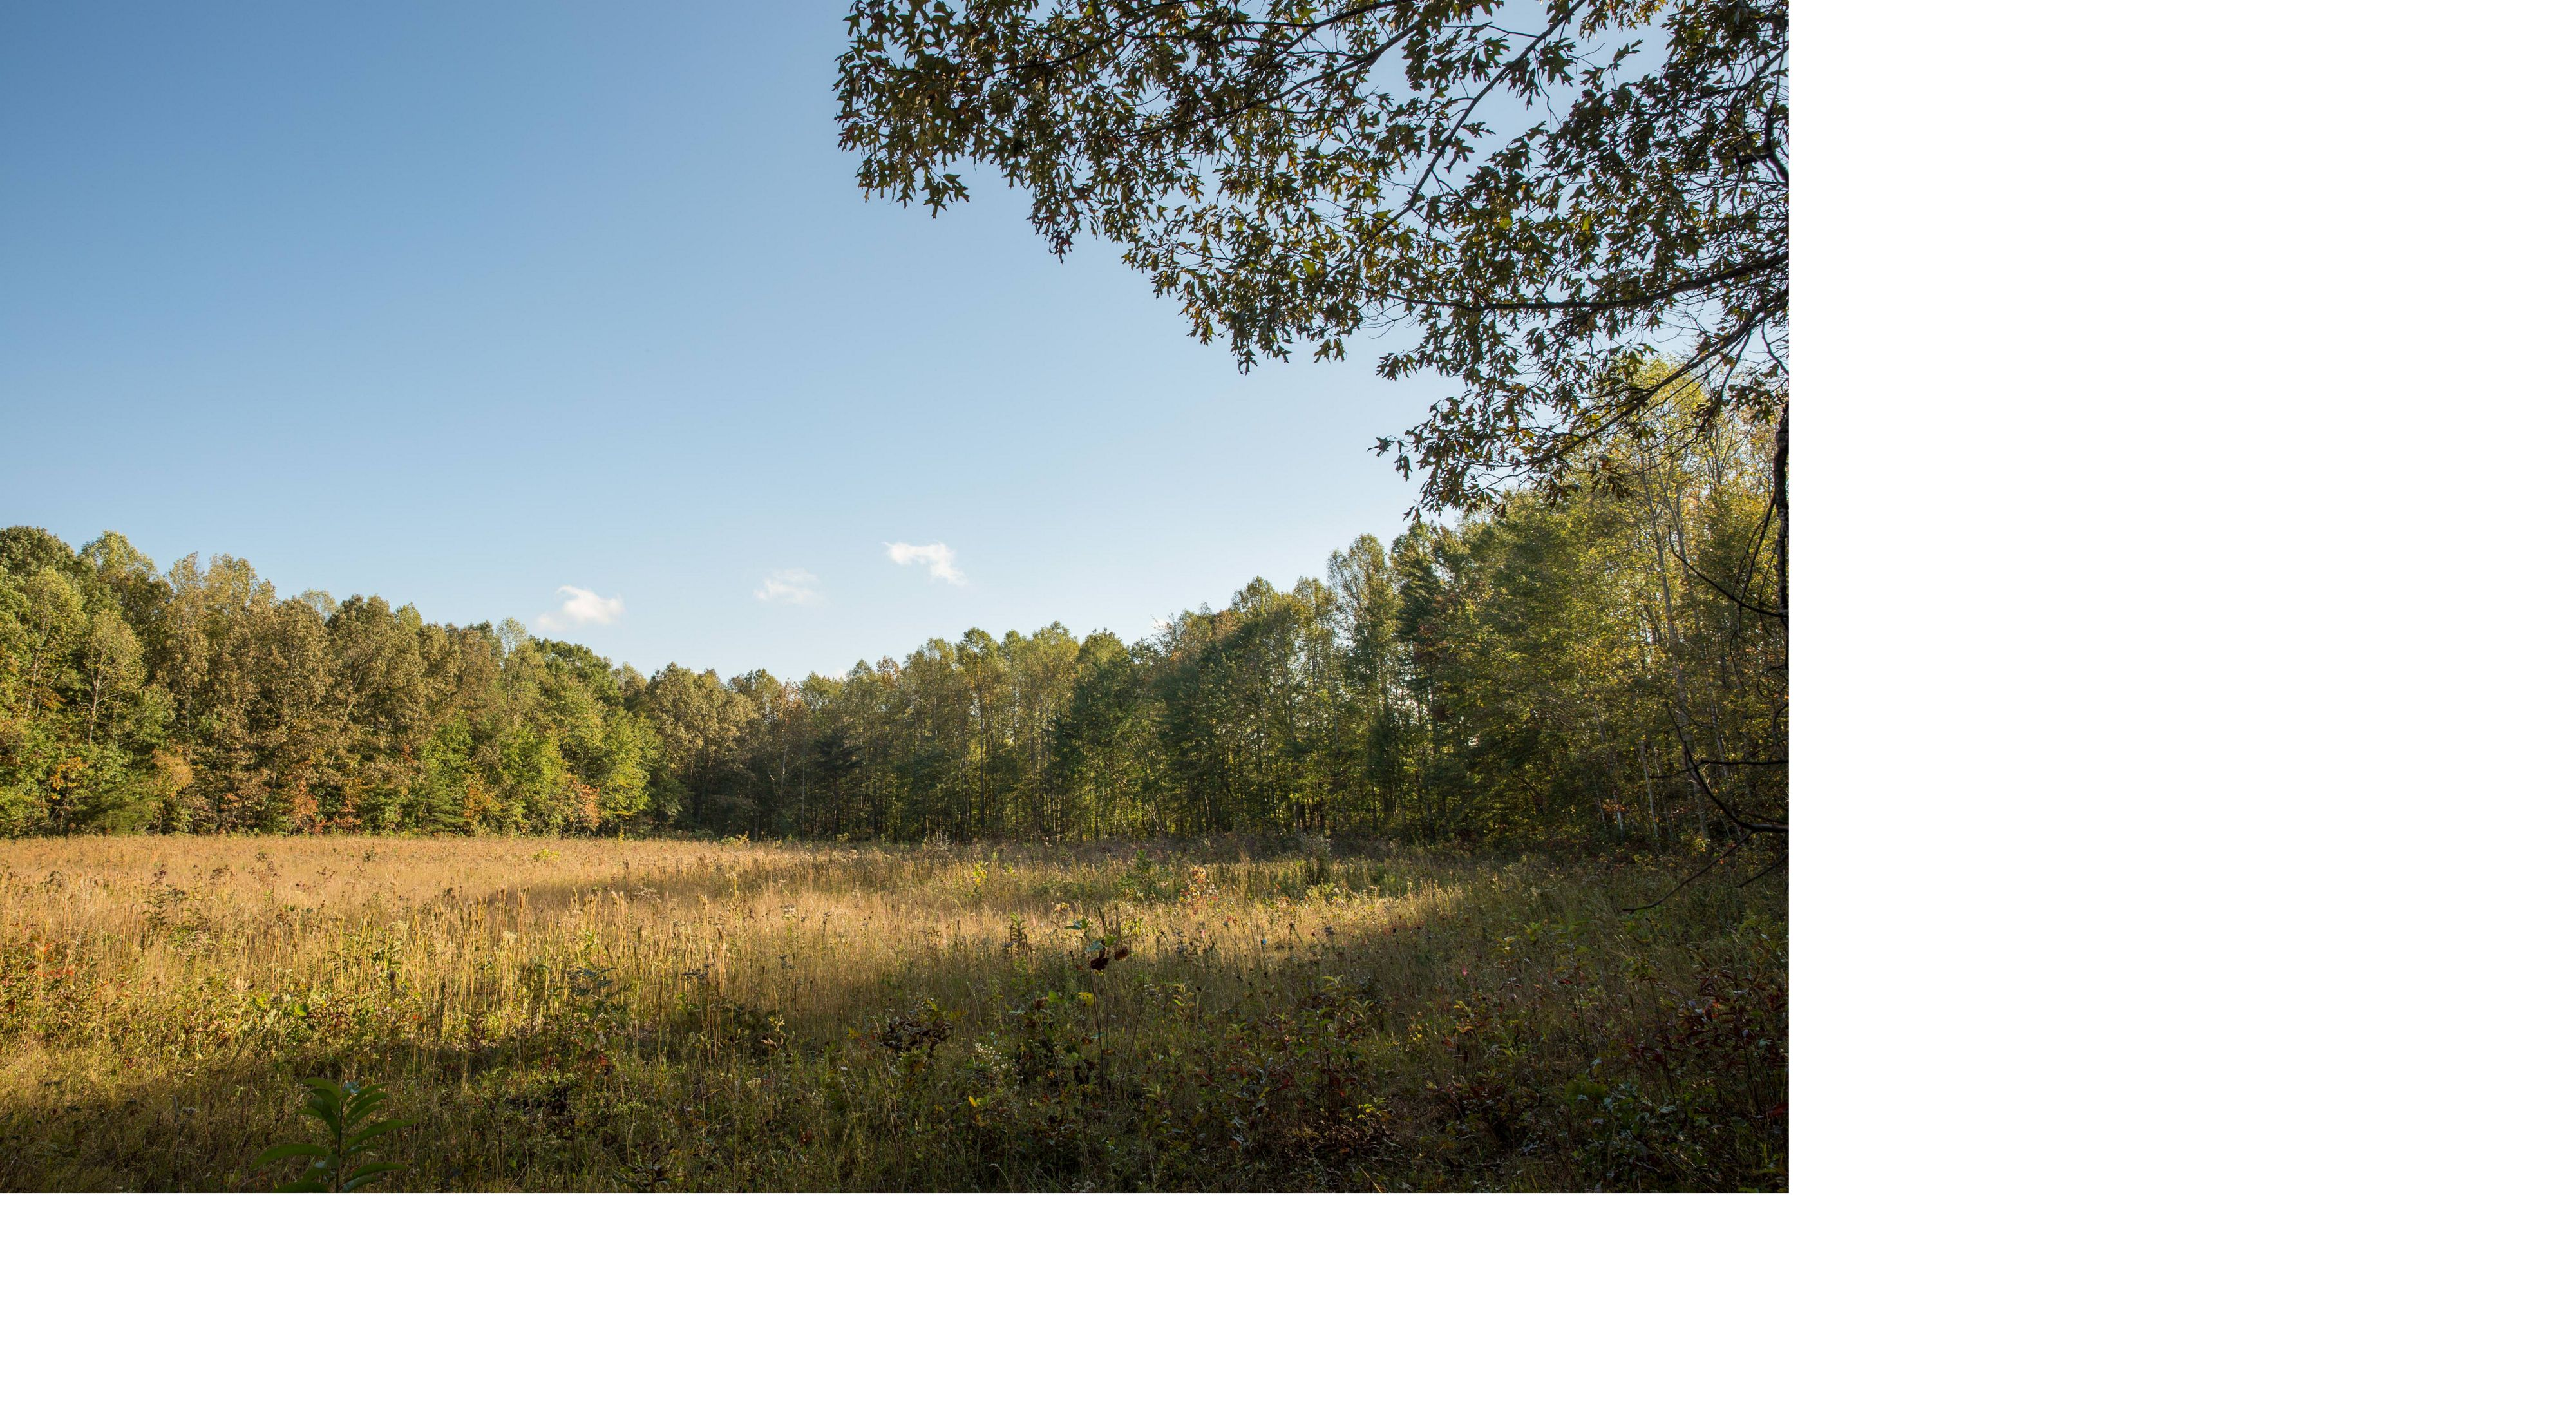 An open prairie surrounded by thick stands of green trees.